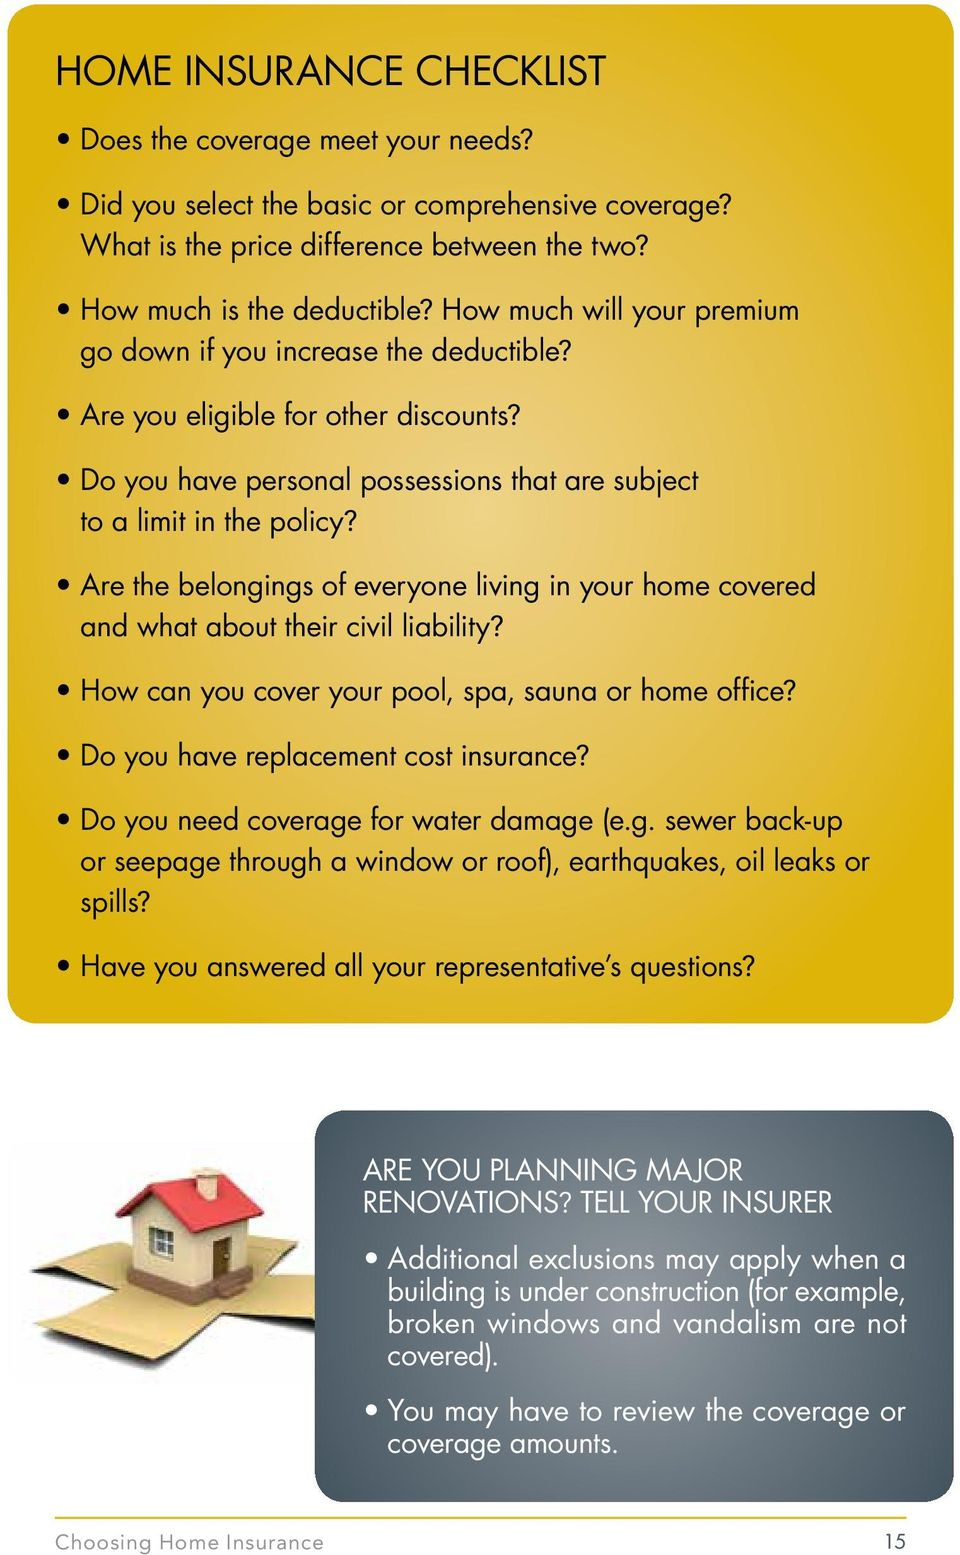 Are the belongings of everyone living in your home covered and what about their civil liability? How can you cover your pool, spa, sauna or home office? Do you have replacement cost insurance?